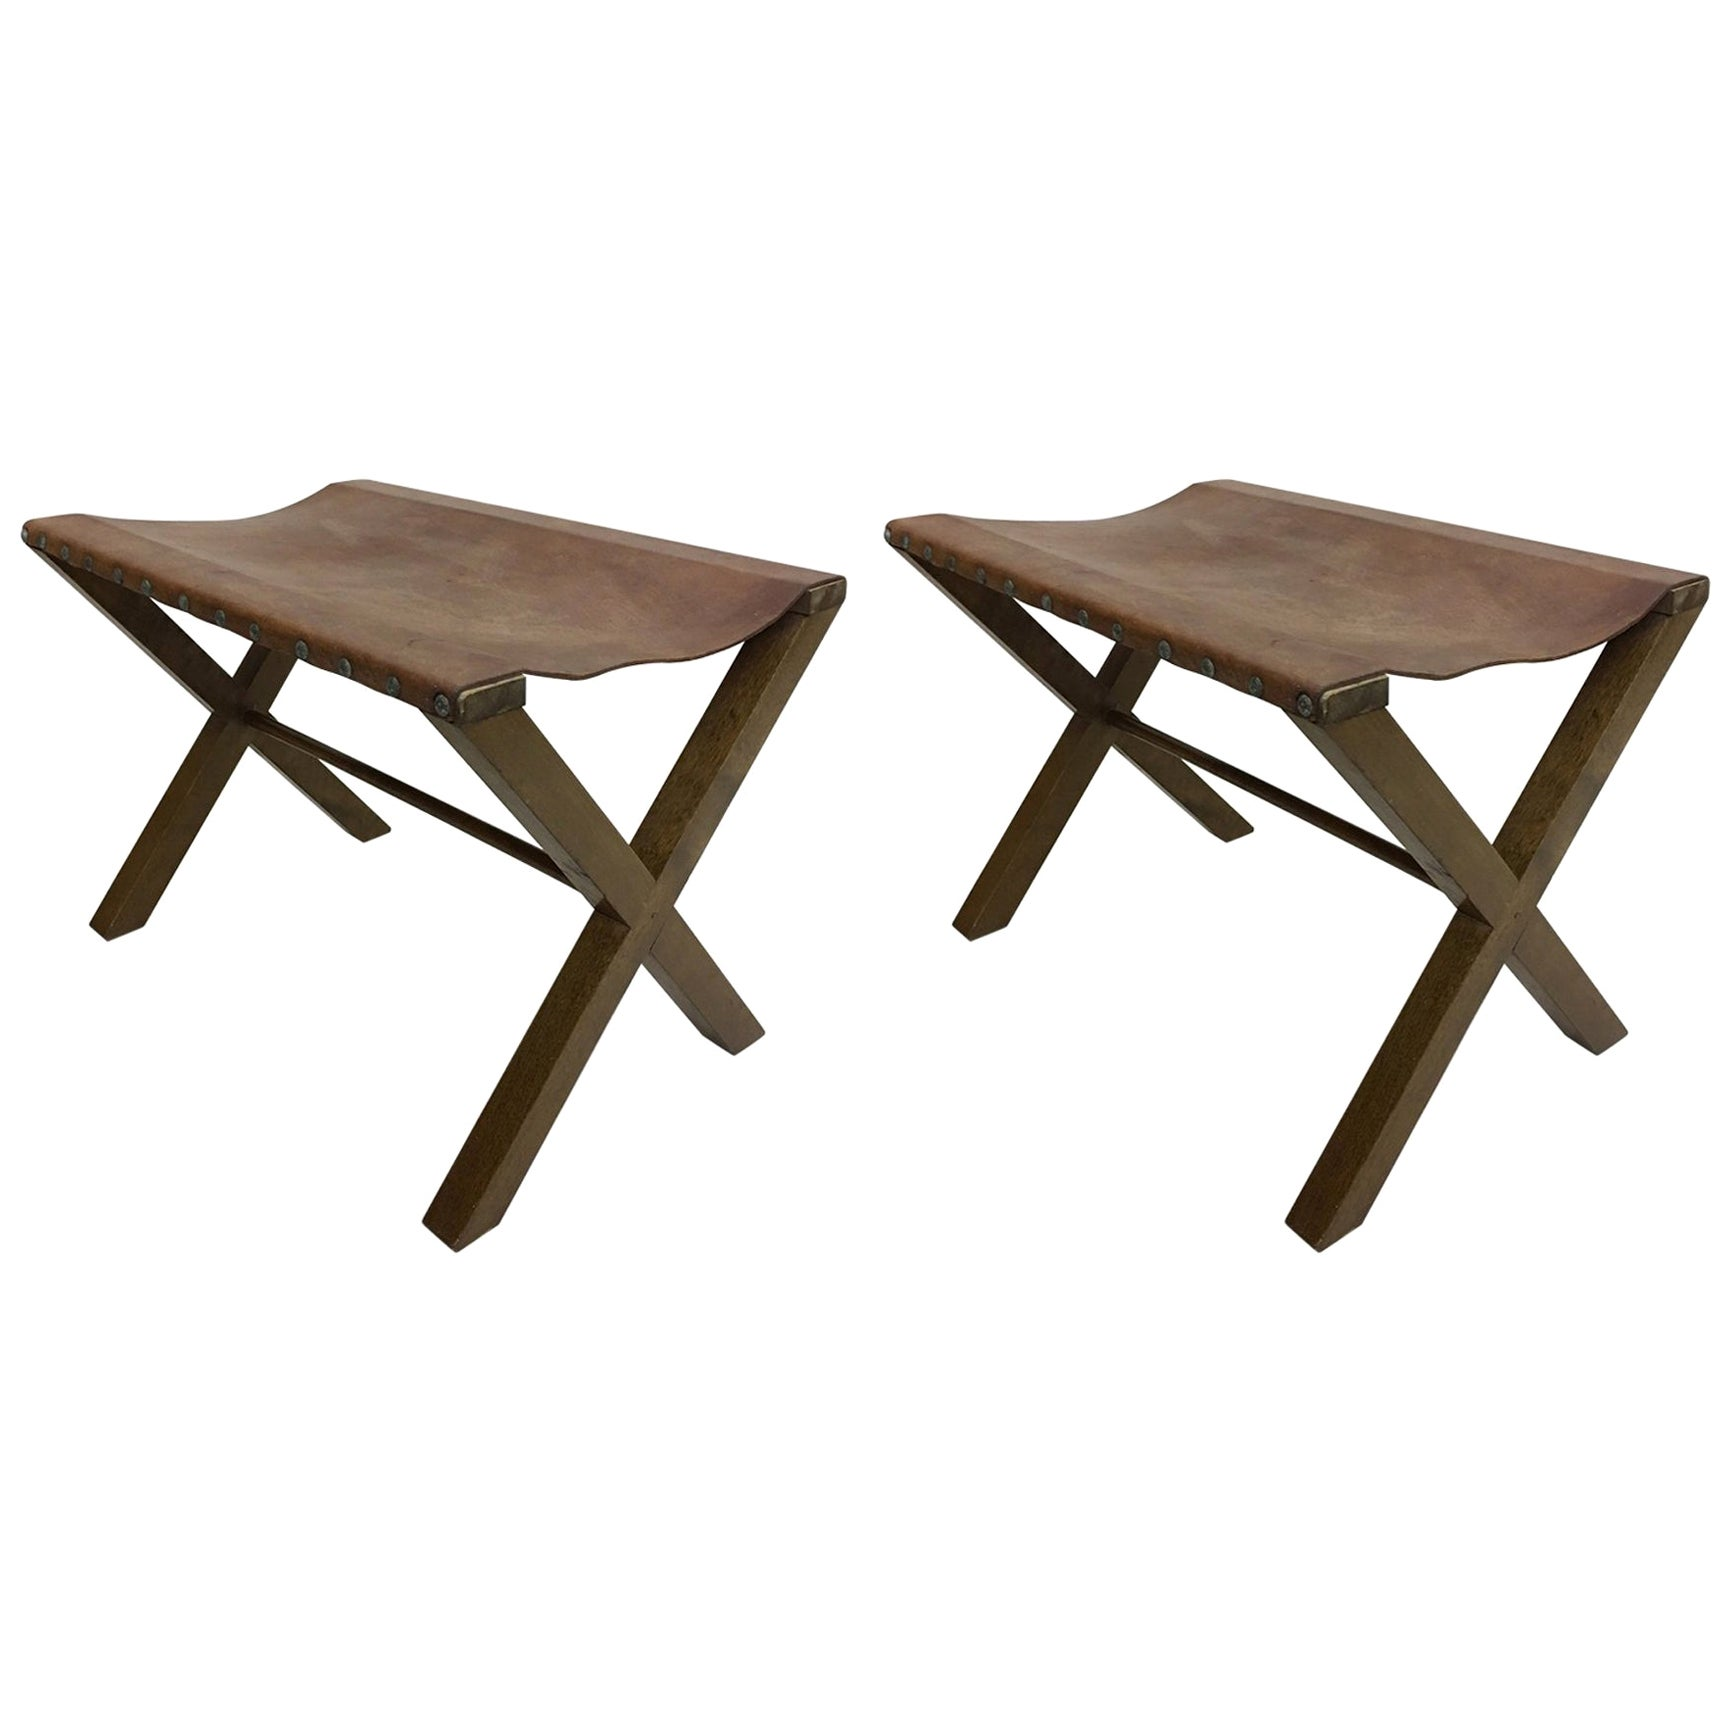 2 French Midcentury Wood and Studded Leather X-Frame Benches, Jean-Michel Frank